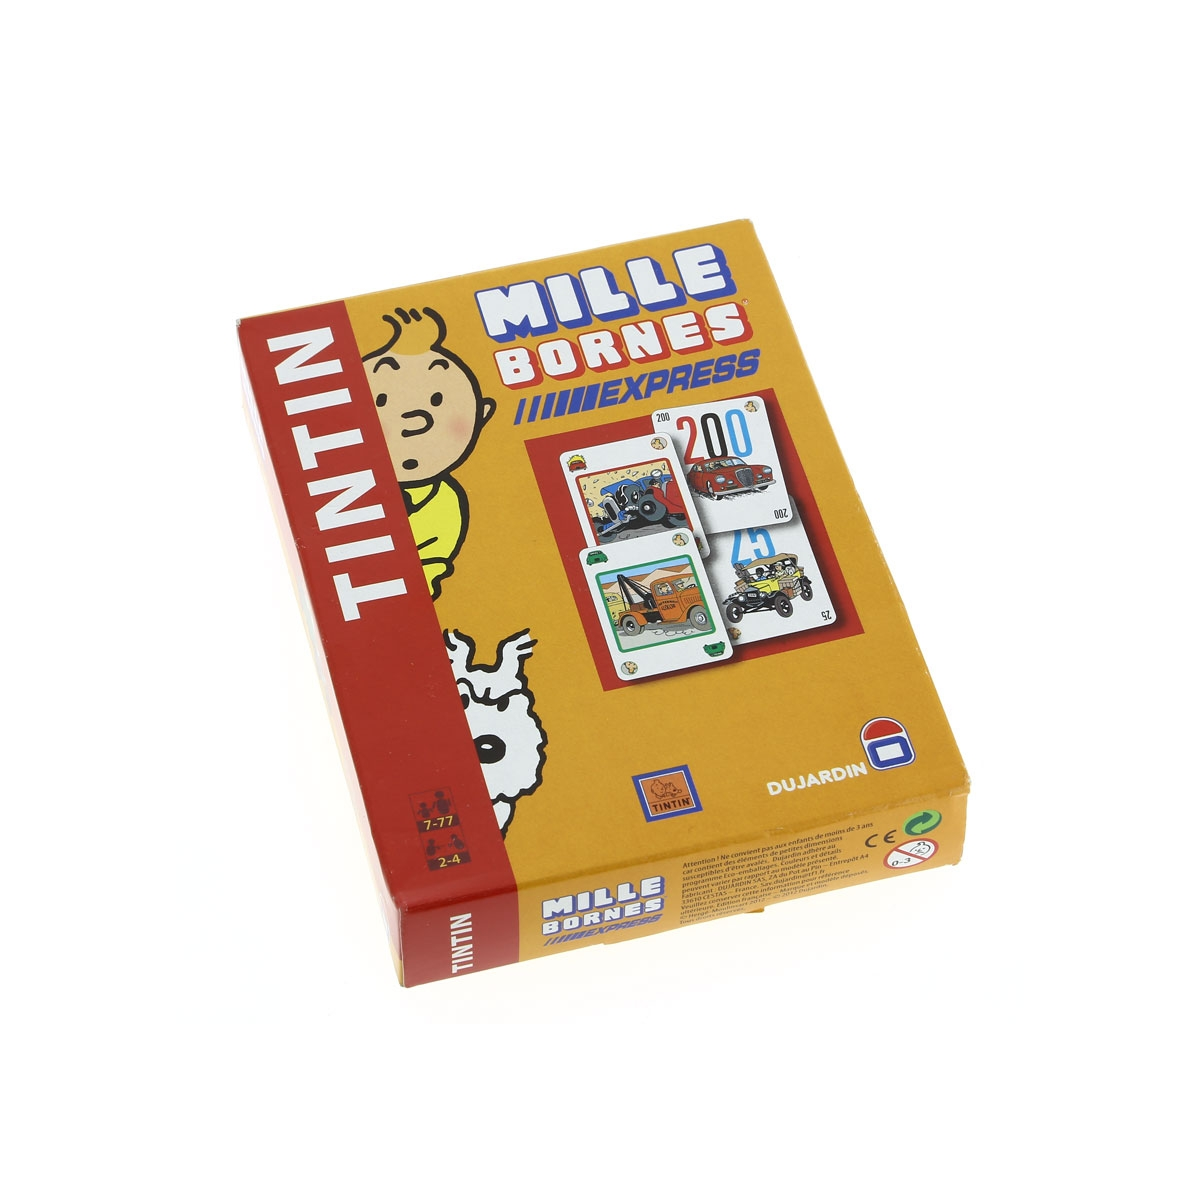 mille bornes tintin dition de voyage dujardin moulinsart. Black Bedroom Furniture Sets. Home Design Ideas